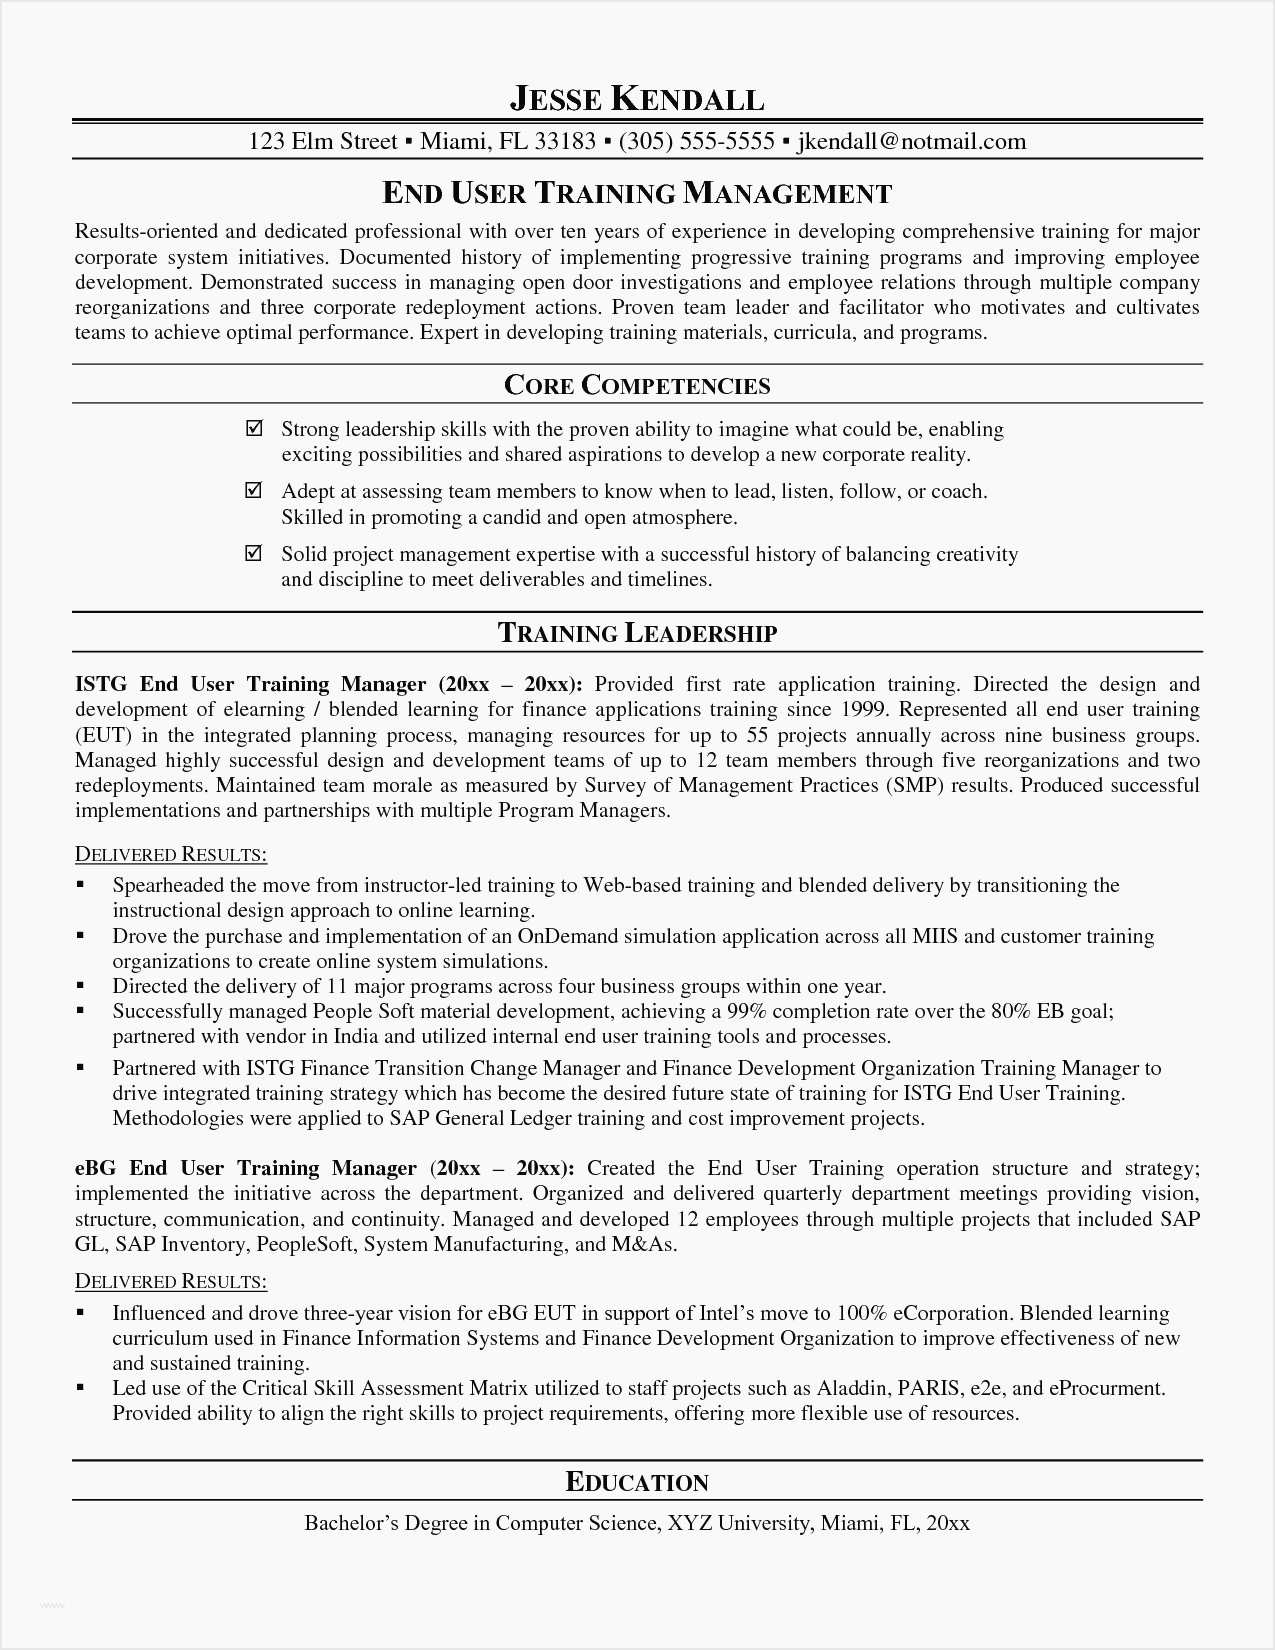 Construction Manager Resume Template - Resume Template Project Manager It Project Manager Resume Unique Cto